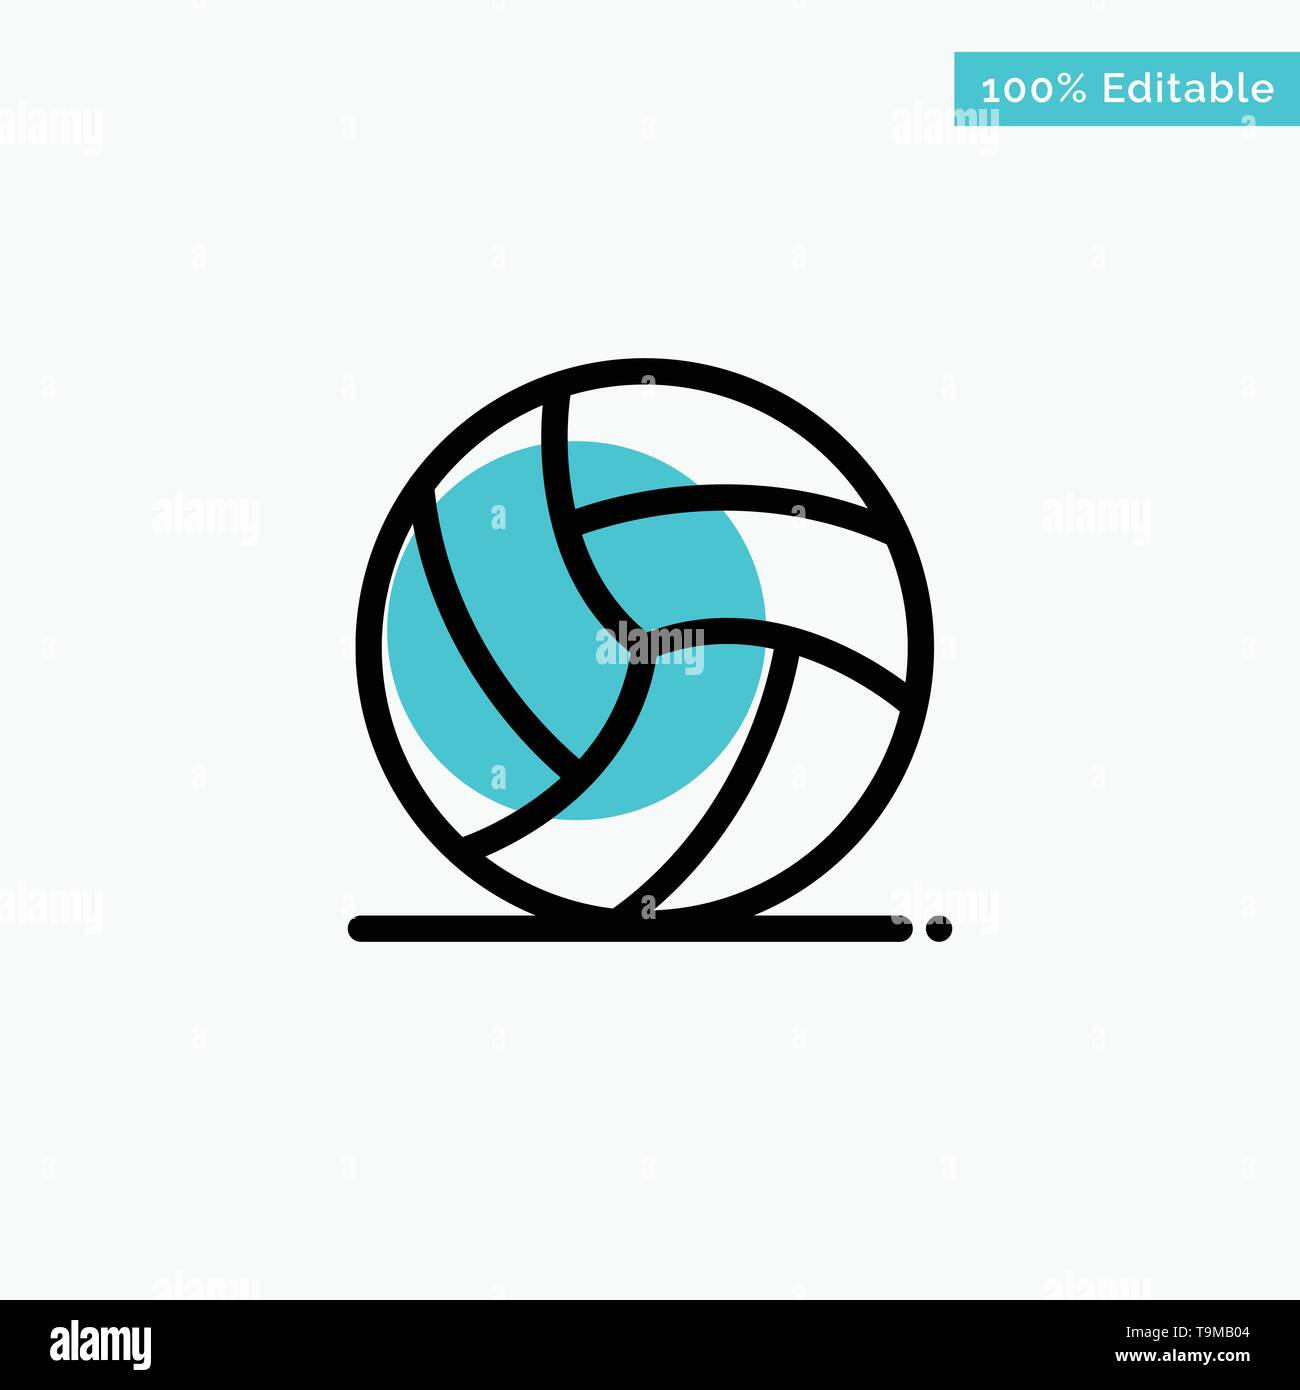 Football, Ireland, Game, Sport turquoise highlight circle point Vector icon - Stock Image